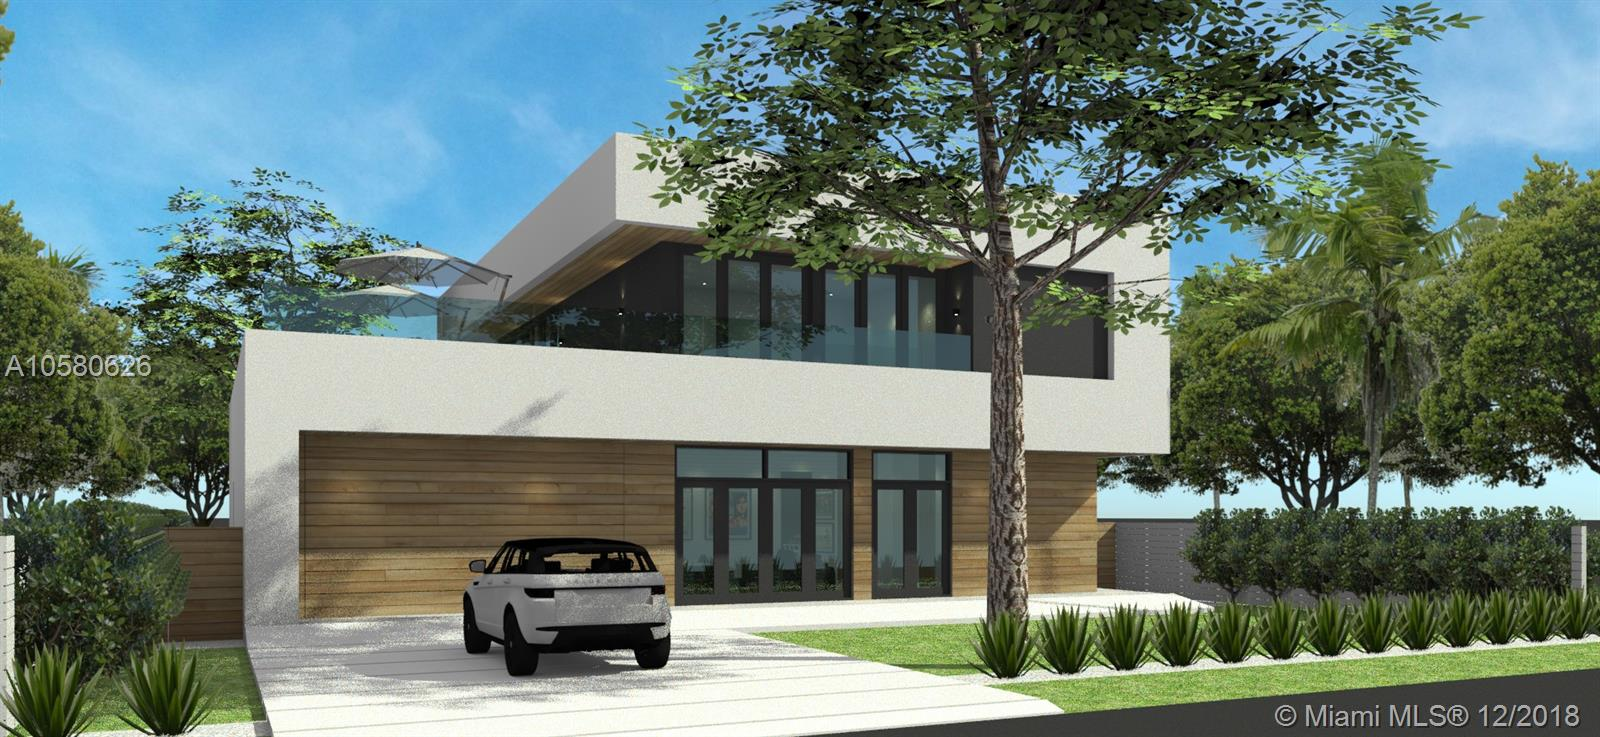 """A brand new architectural masterpiece in the heart of High Pines, one of the most desirable neighborhood in South florida. Designed by well known architect Scott Tao. This 6,500 + sqft, 5 Bedrooms, 5.5 Baths, Full Laundry, Ample Storage, Great outdoor Terrace 850sqft, Ground Floor Covered Terrace.650 sqft. This custom Mansion offers a massive open layout, 12"""" foot hight ceiling, gourmet kitchen to mentioned a few. Endless details throughout this tropical Modern home. Turn key with StudioKaza Design!!  A must see it."""